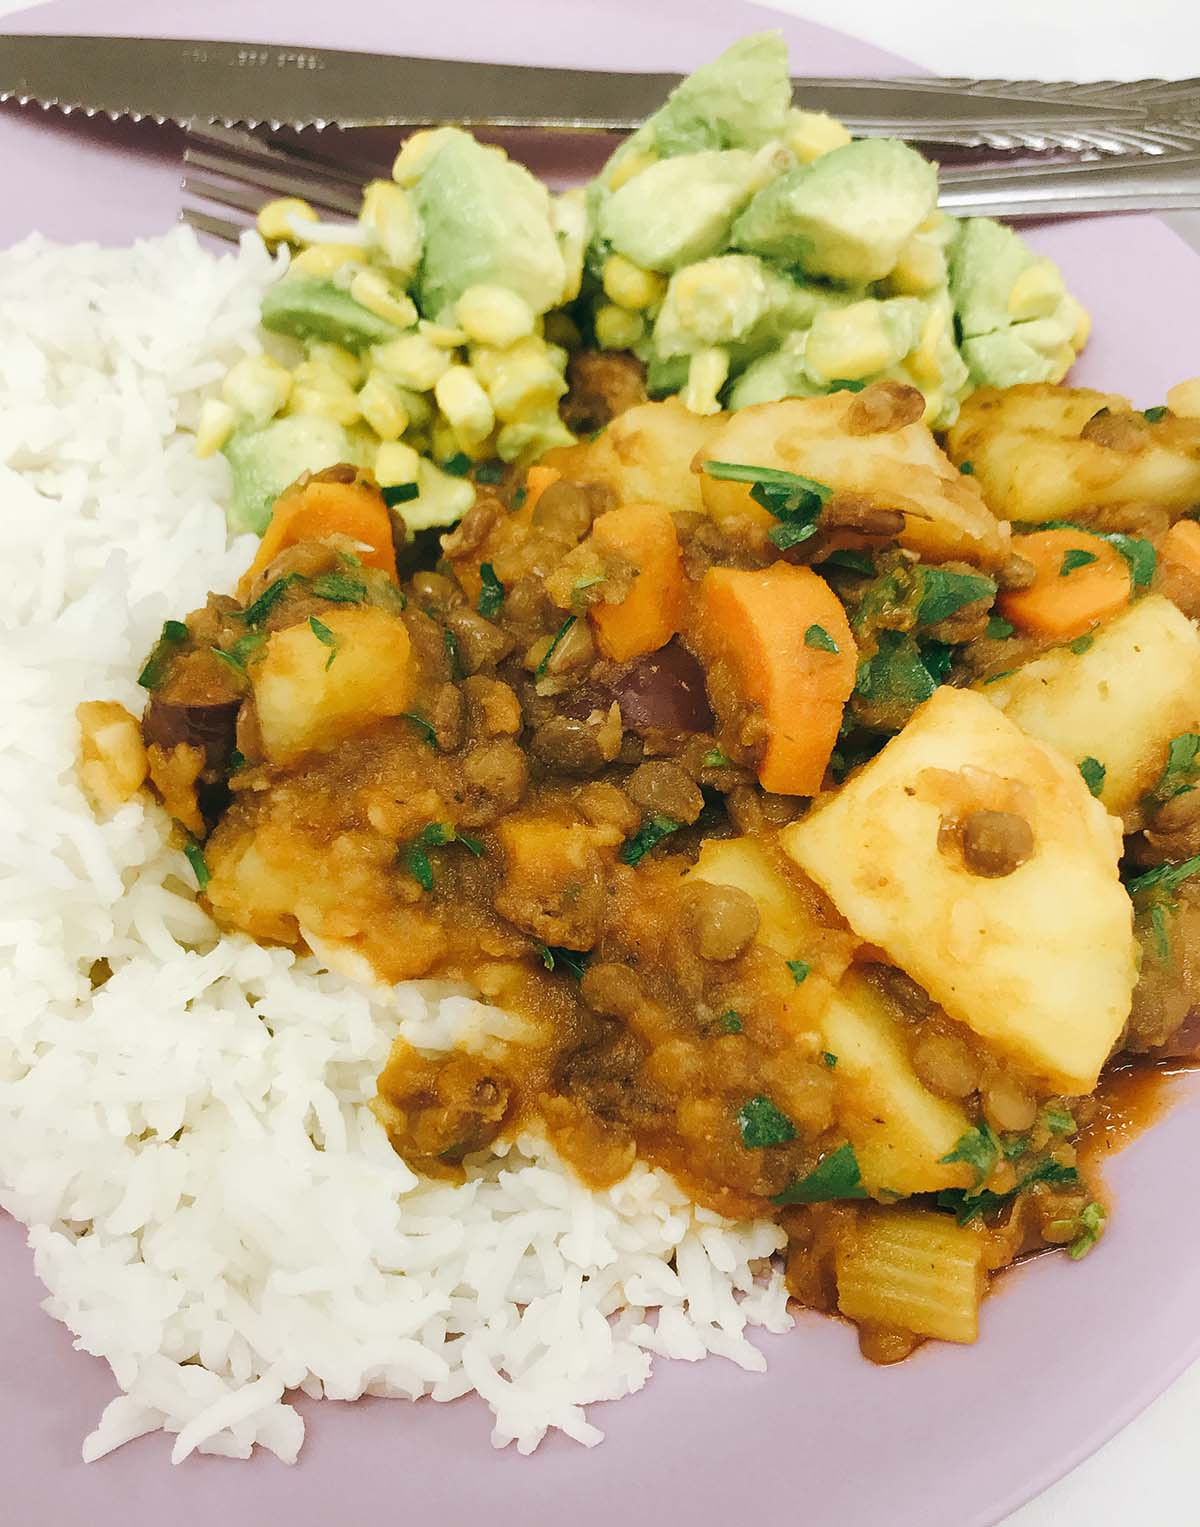 cuban veggie picadillo with rice and avocado salad on purple plate